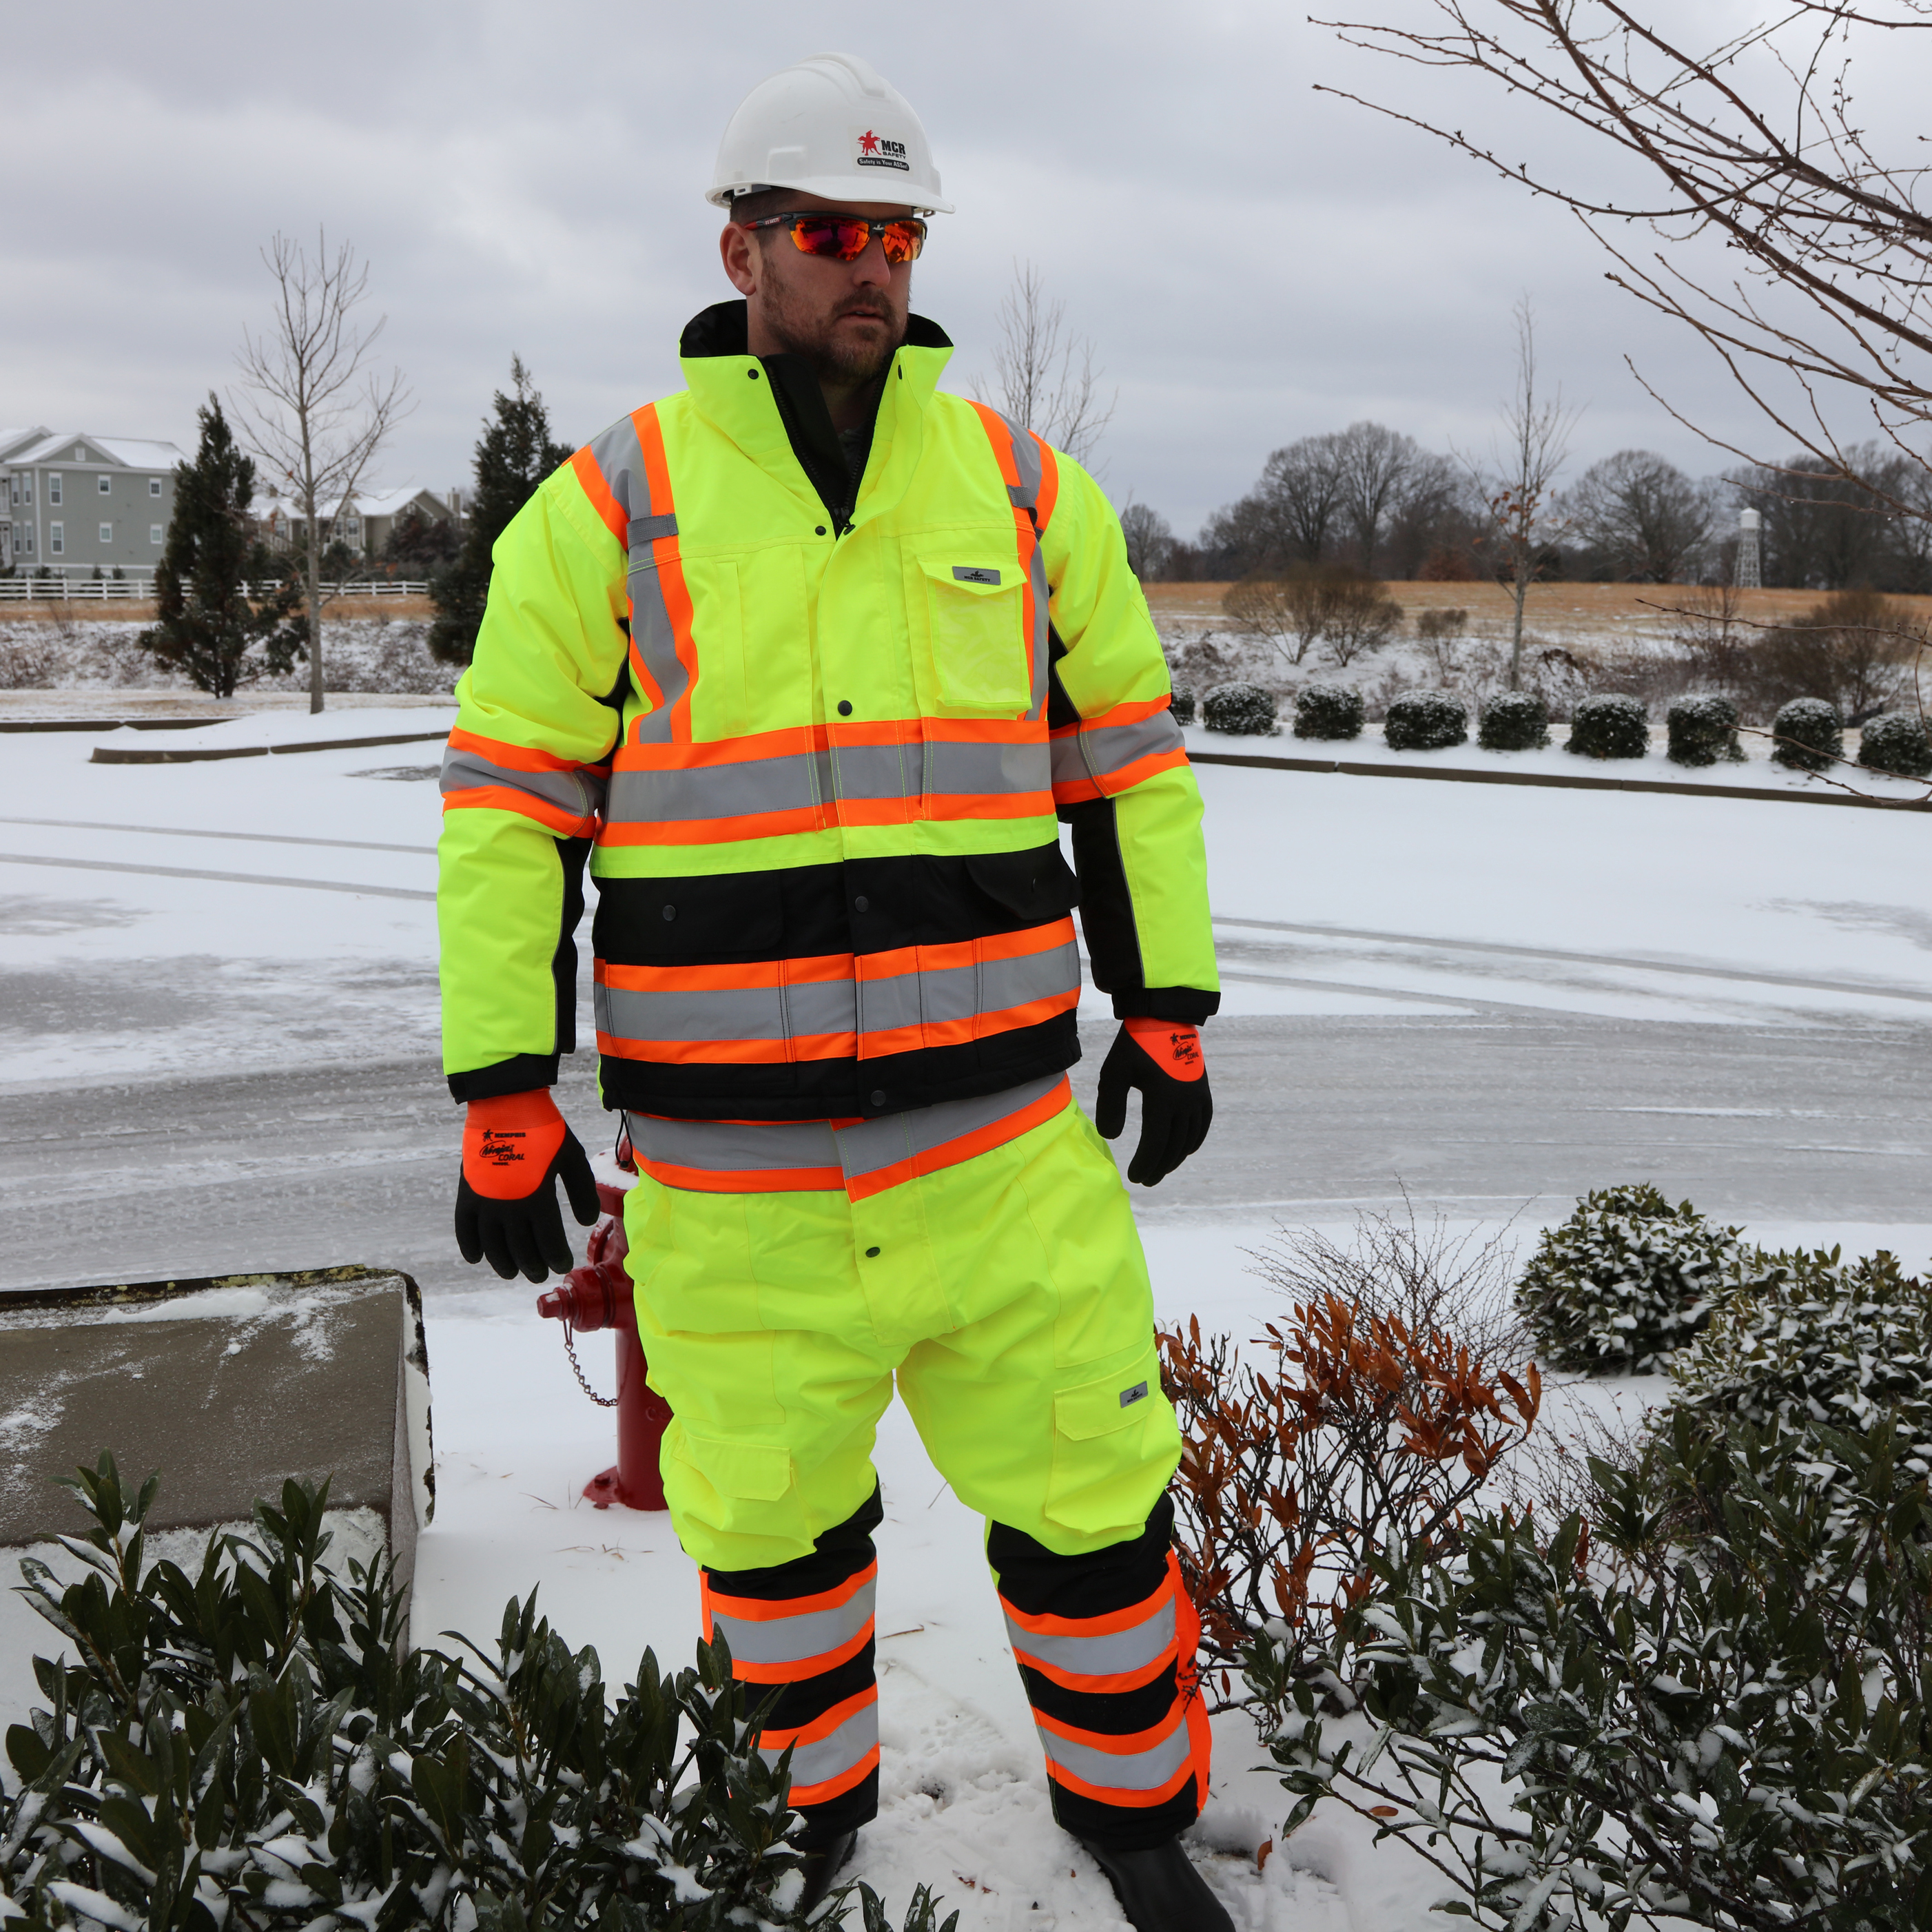 High Visibility Gloves, Garments, and Apparal